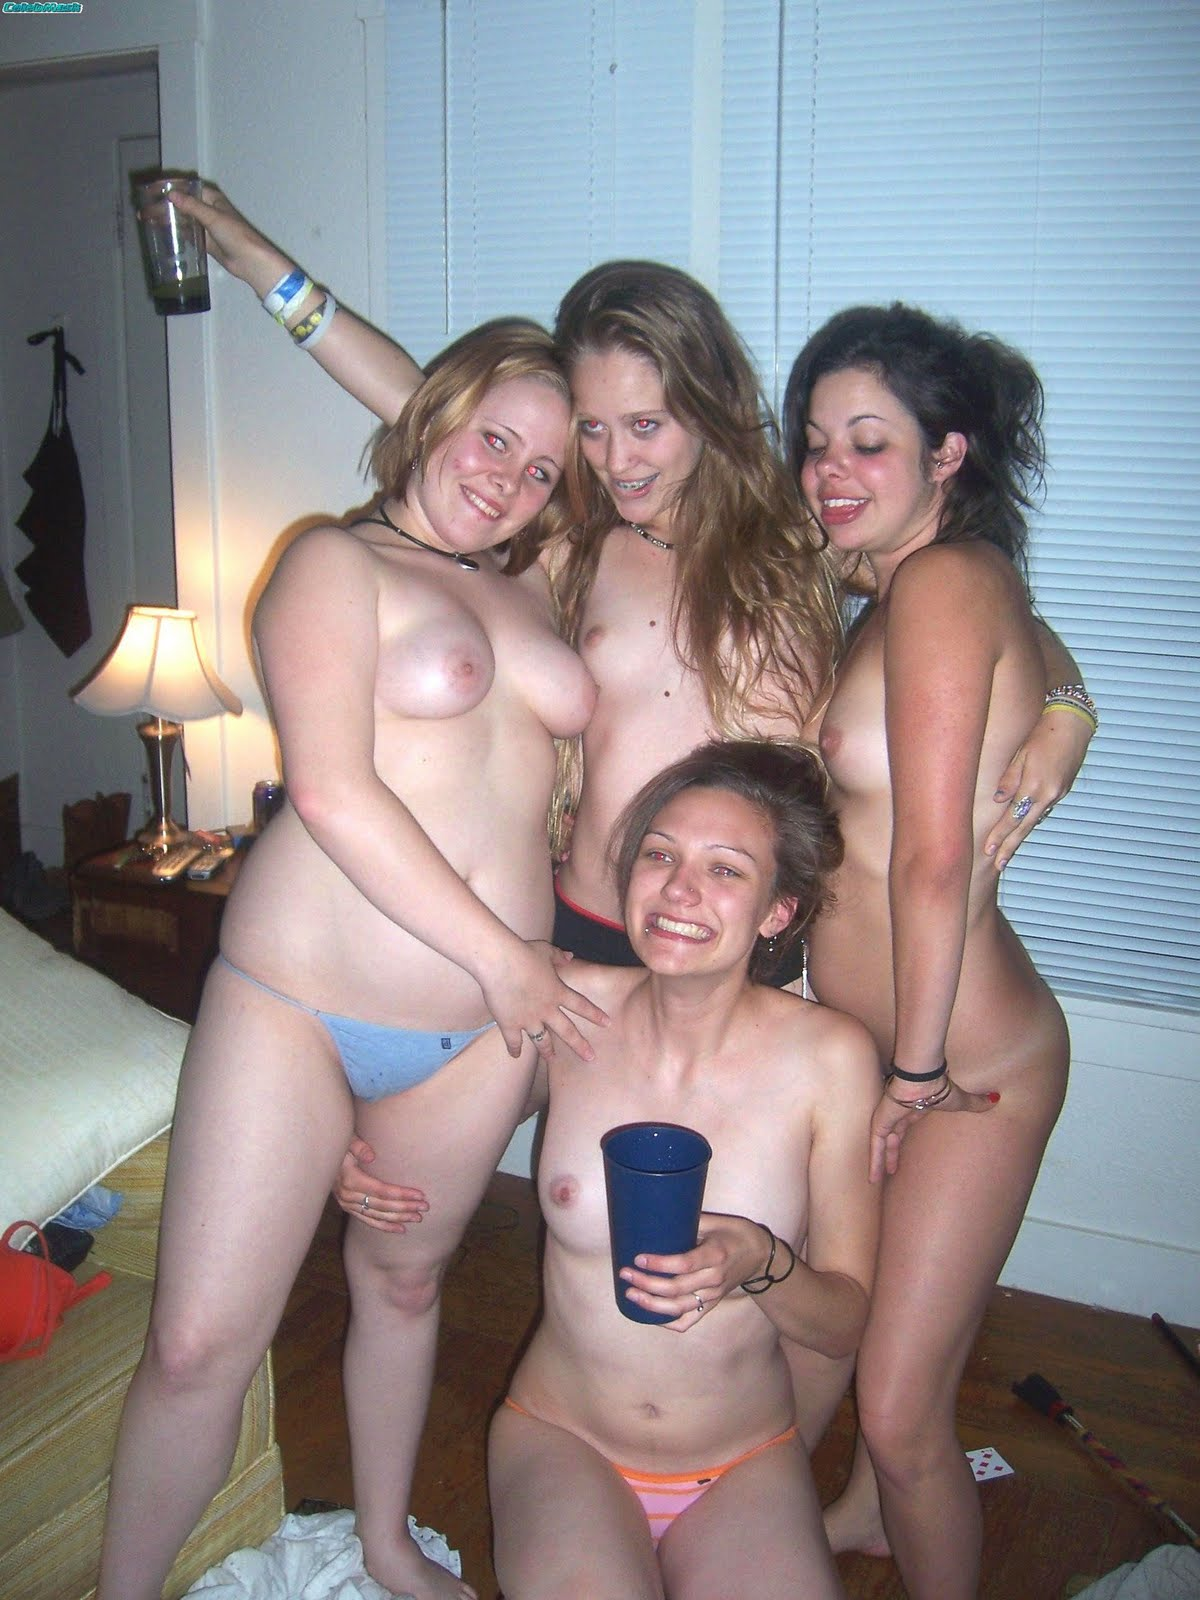 Nude Party Games Tumblr